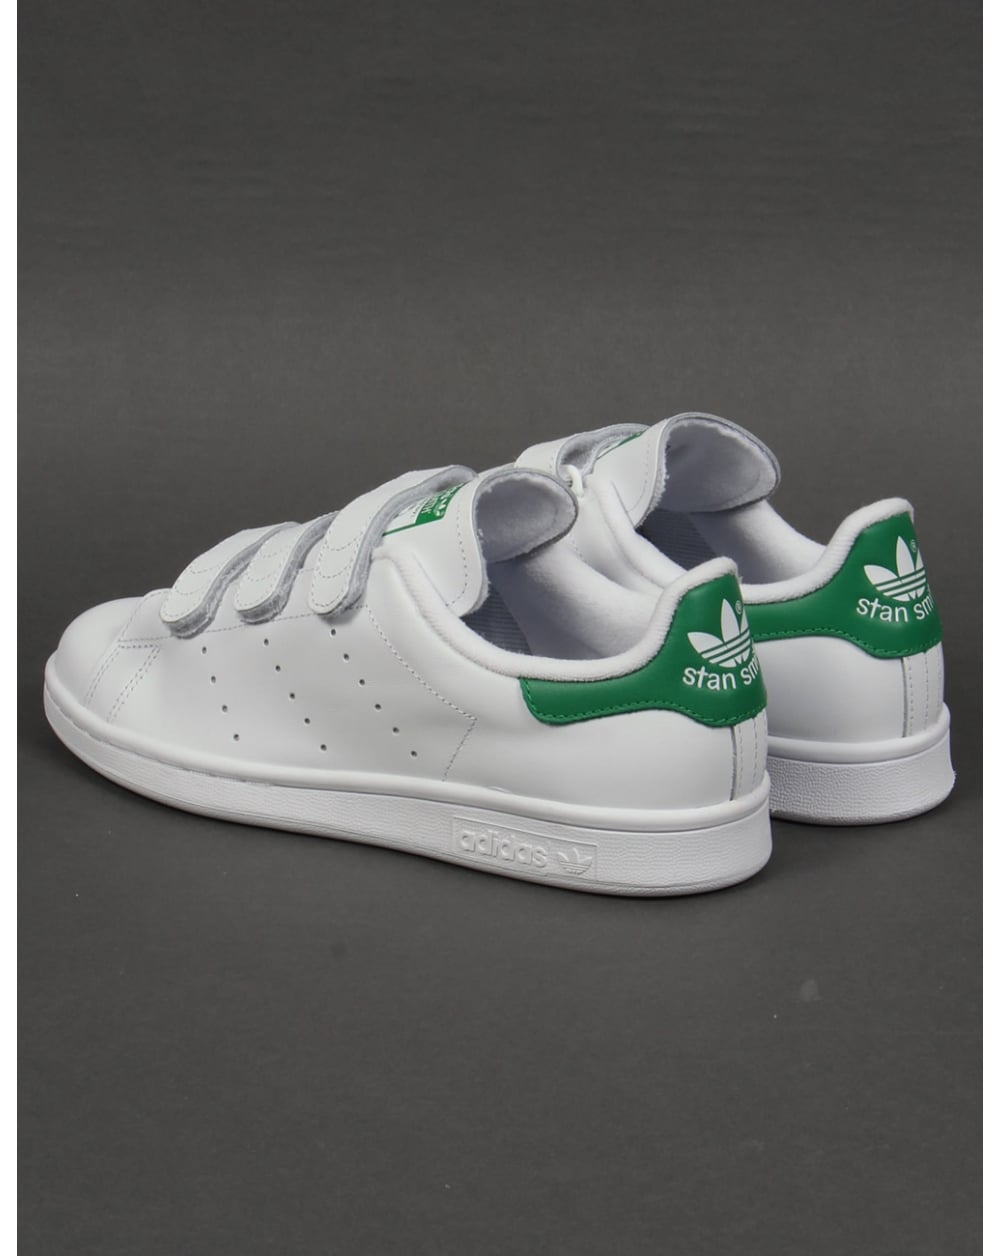 adidas stan smith cf trainers white green originals shoes. Black Bedroom Furniture Sets. Home Design Ideas